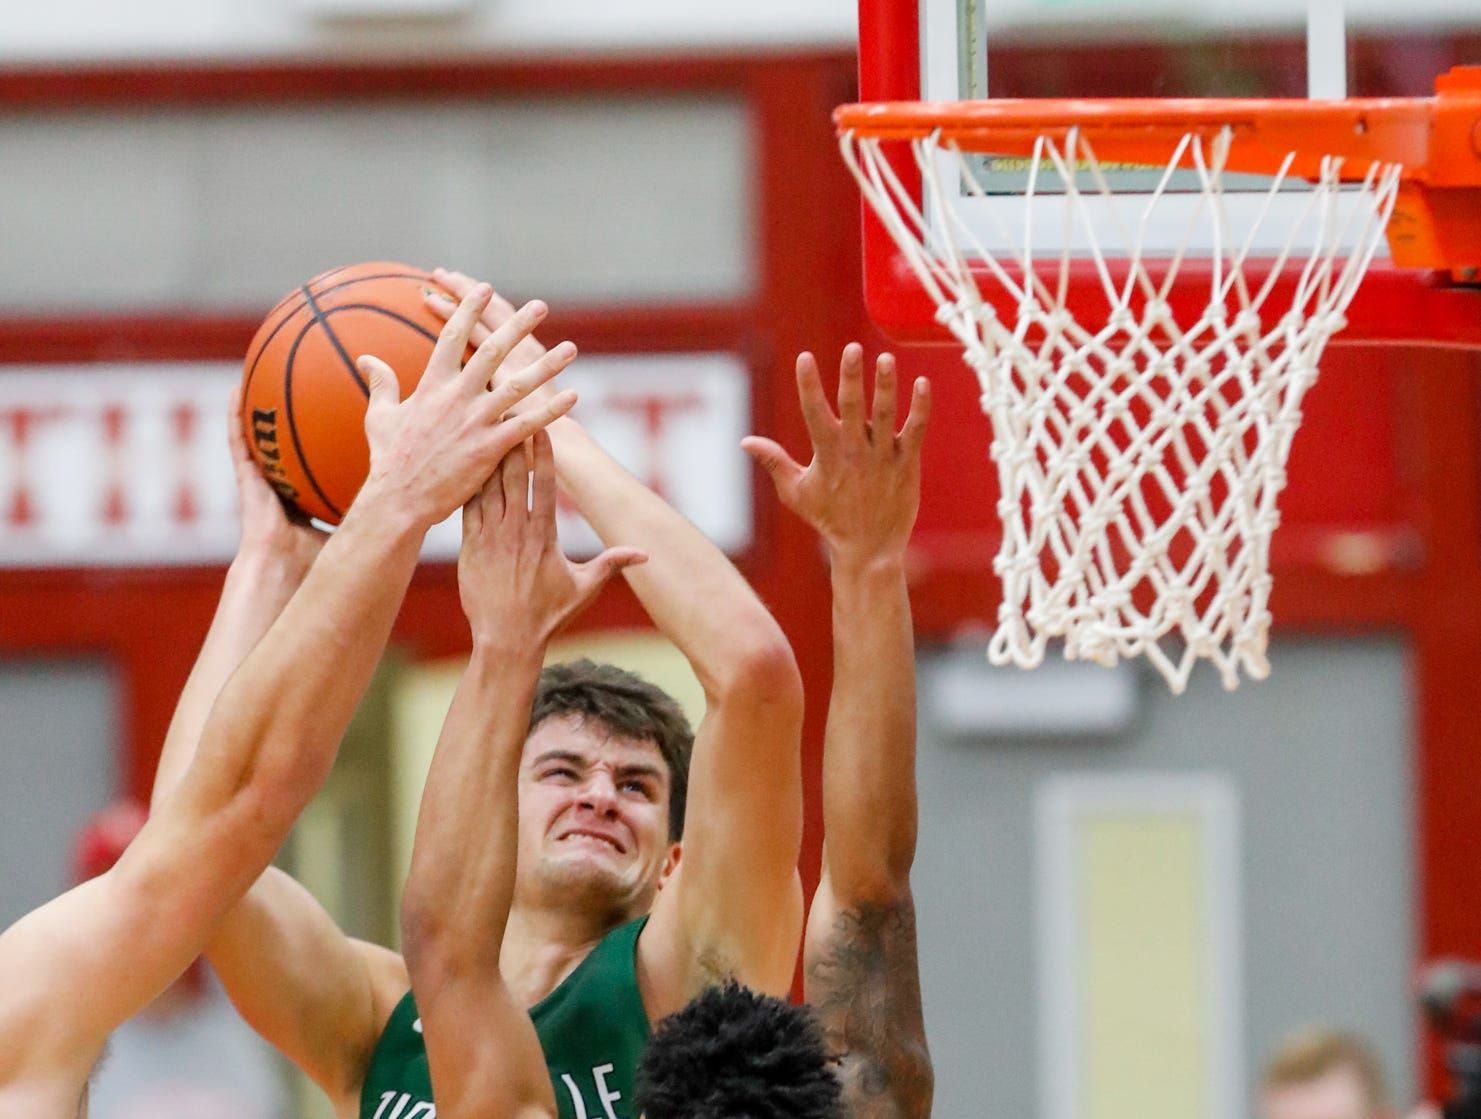 Zionsville Community High School's Nathan Childress (24) and Cathedral High School's guard James Franklin (0) grab for a rebound during a Tip Off Classic game between Cathedral High School and Zionsville Community High School, held at the Southport Fieldhouse, on Saturday, Dec. 8, 2018.